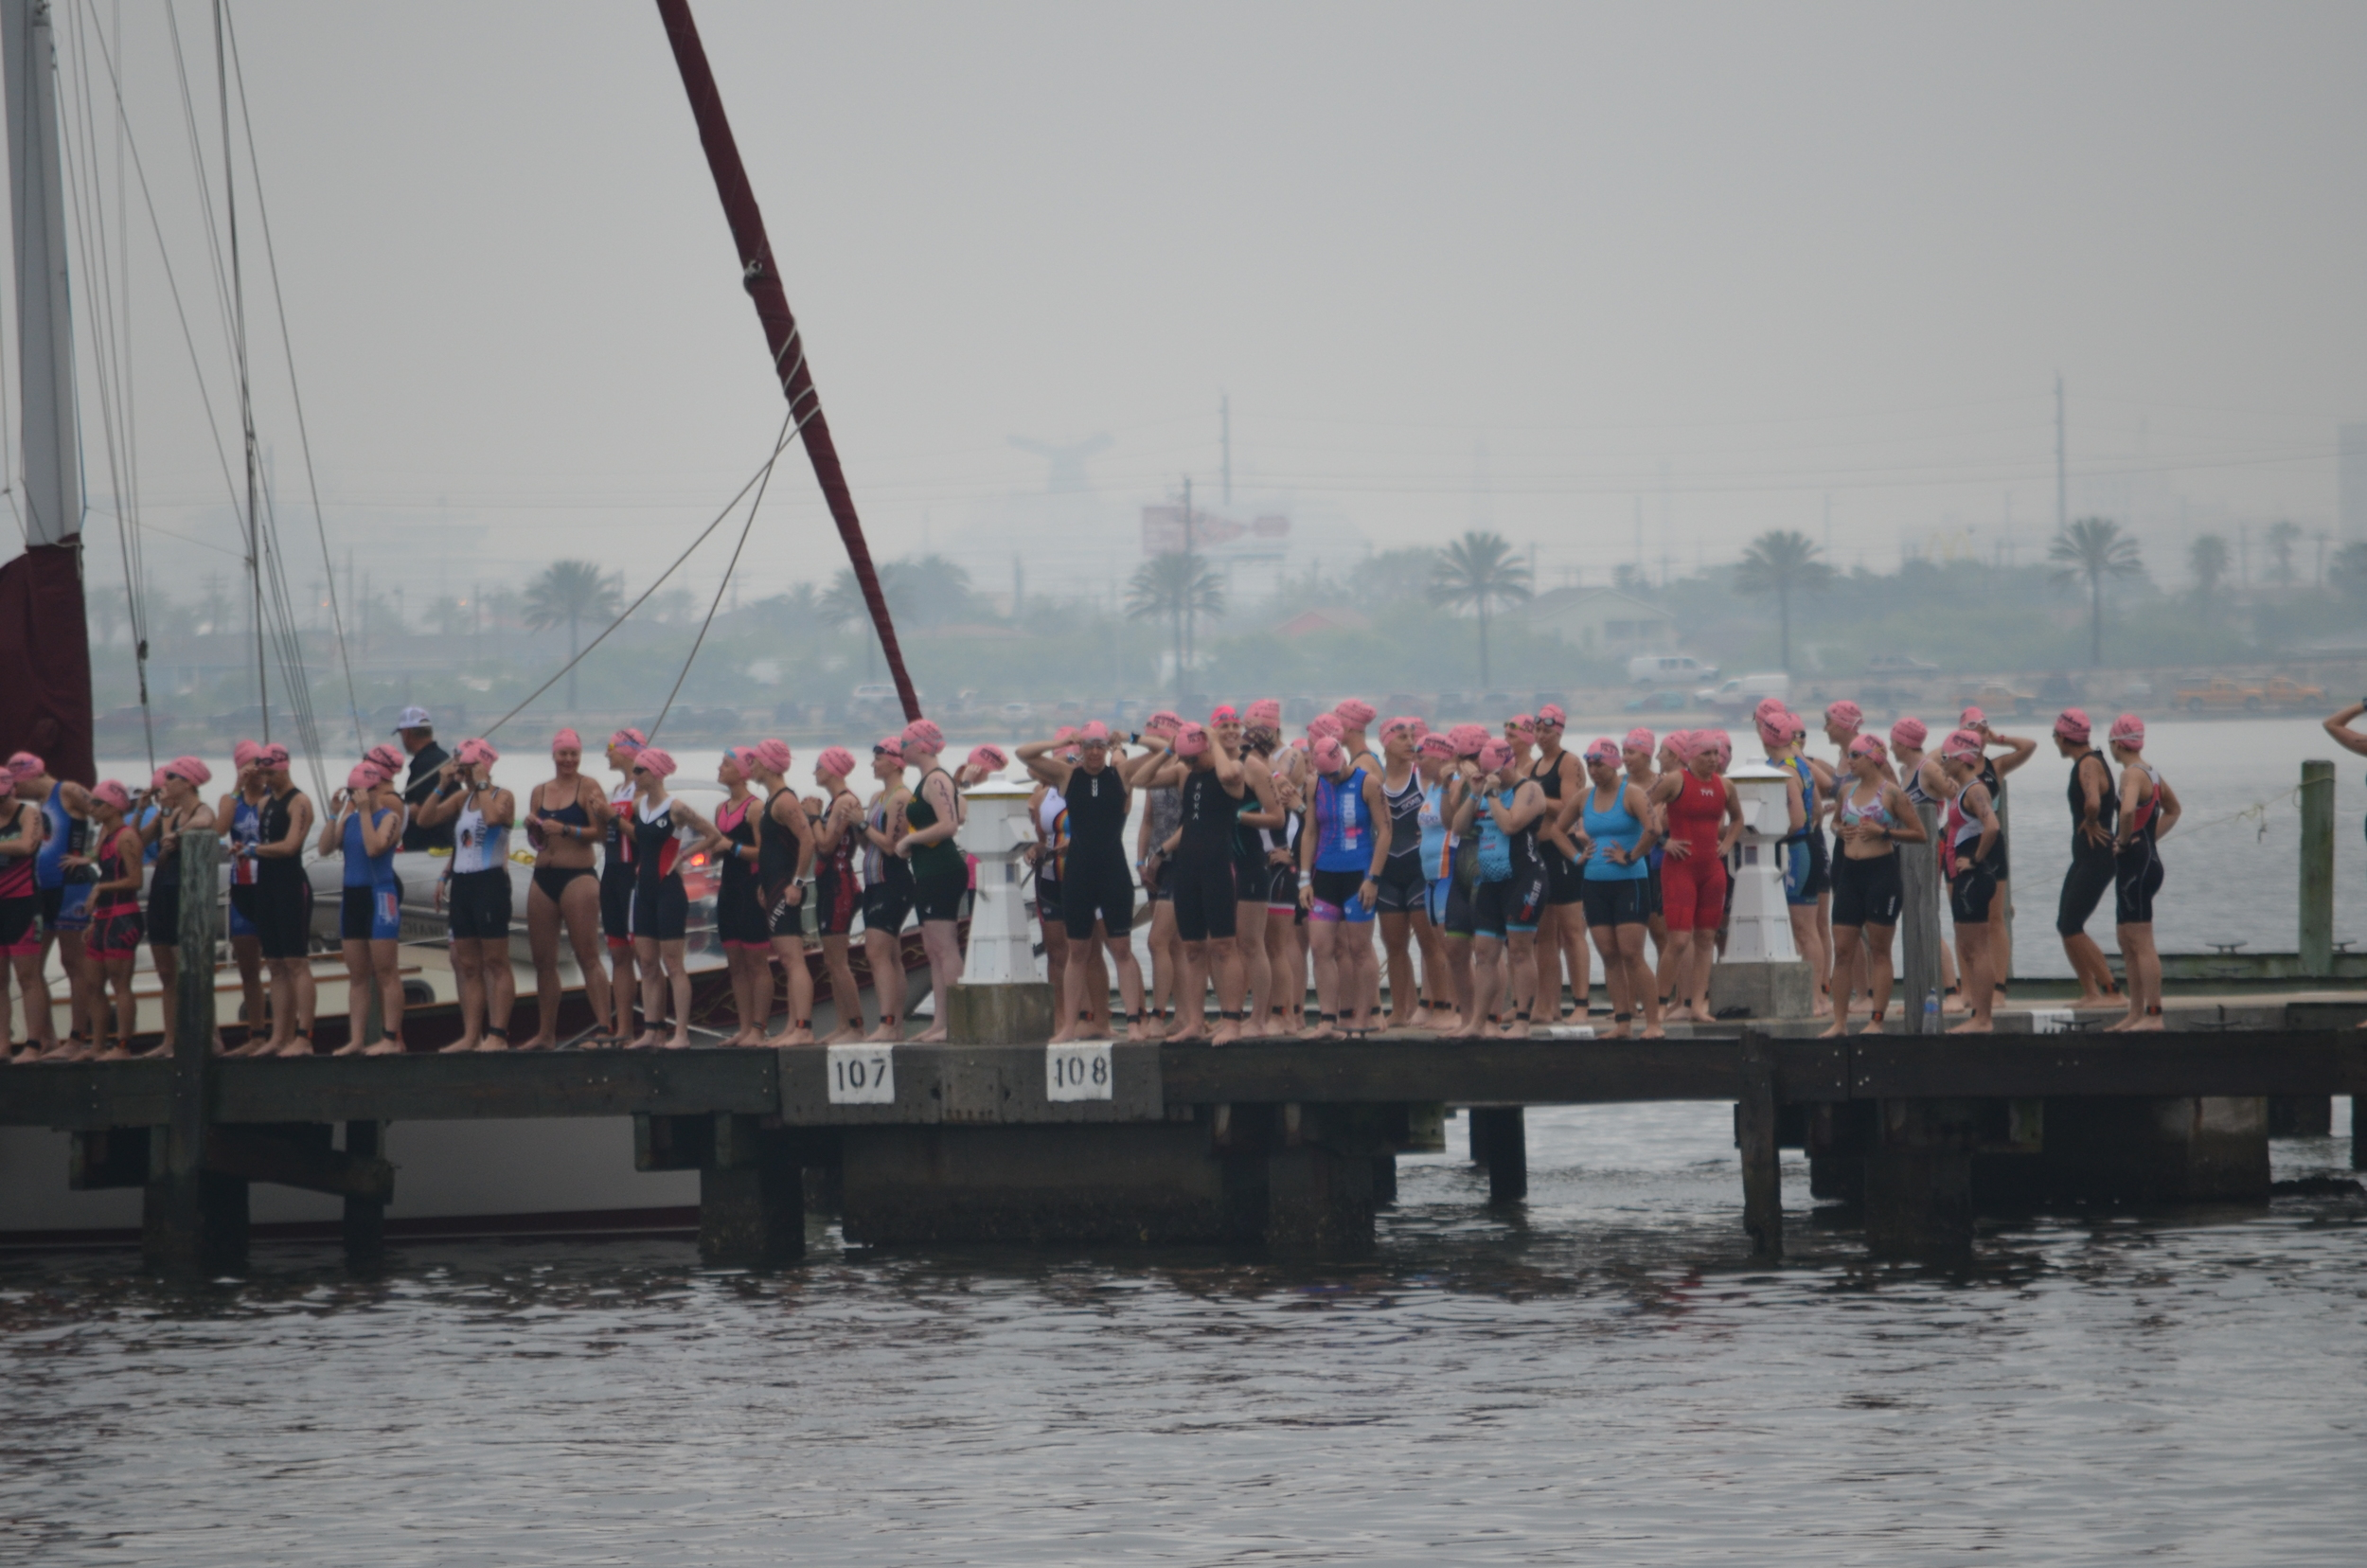 Waiting to enter the water for a brief (4min) warmup